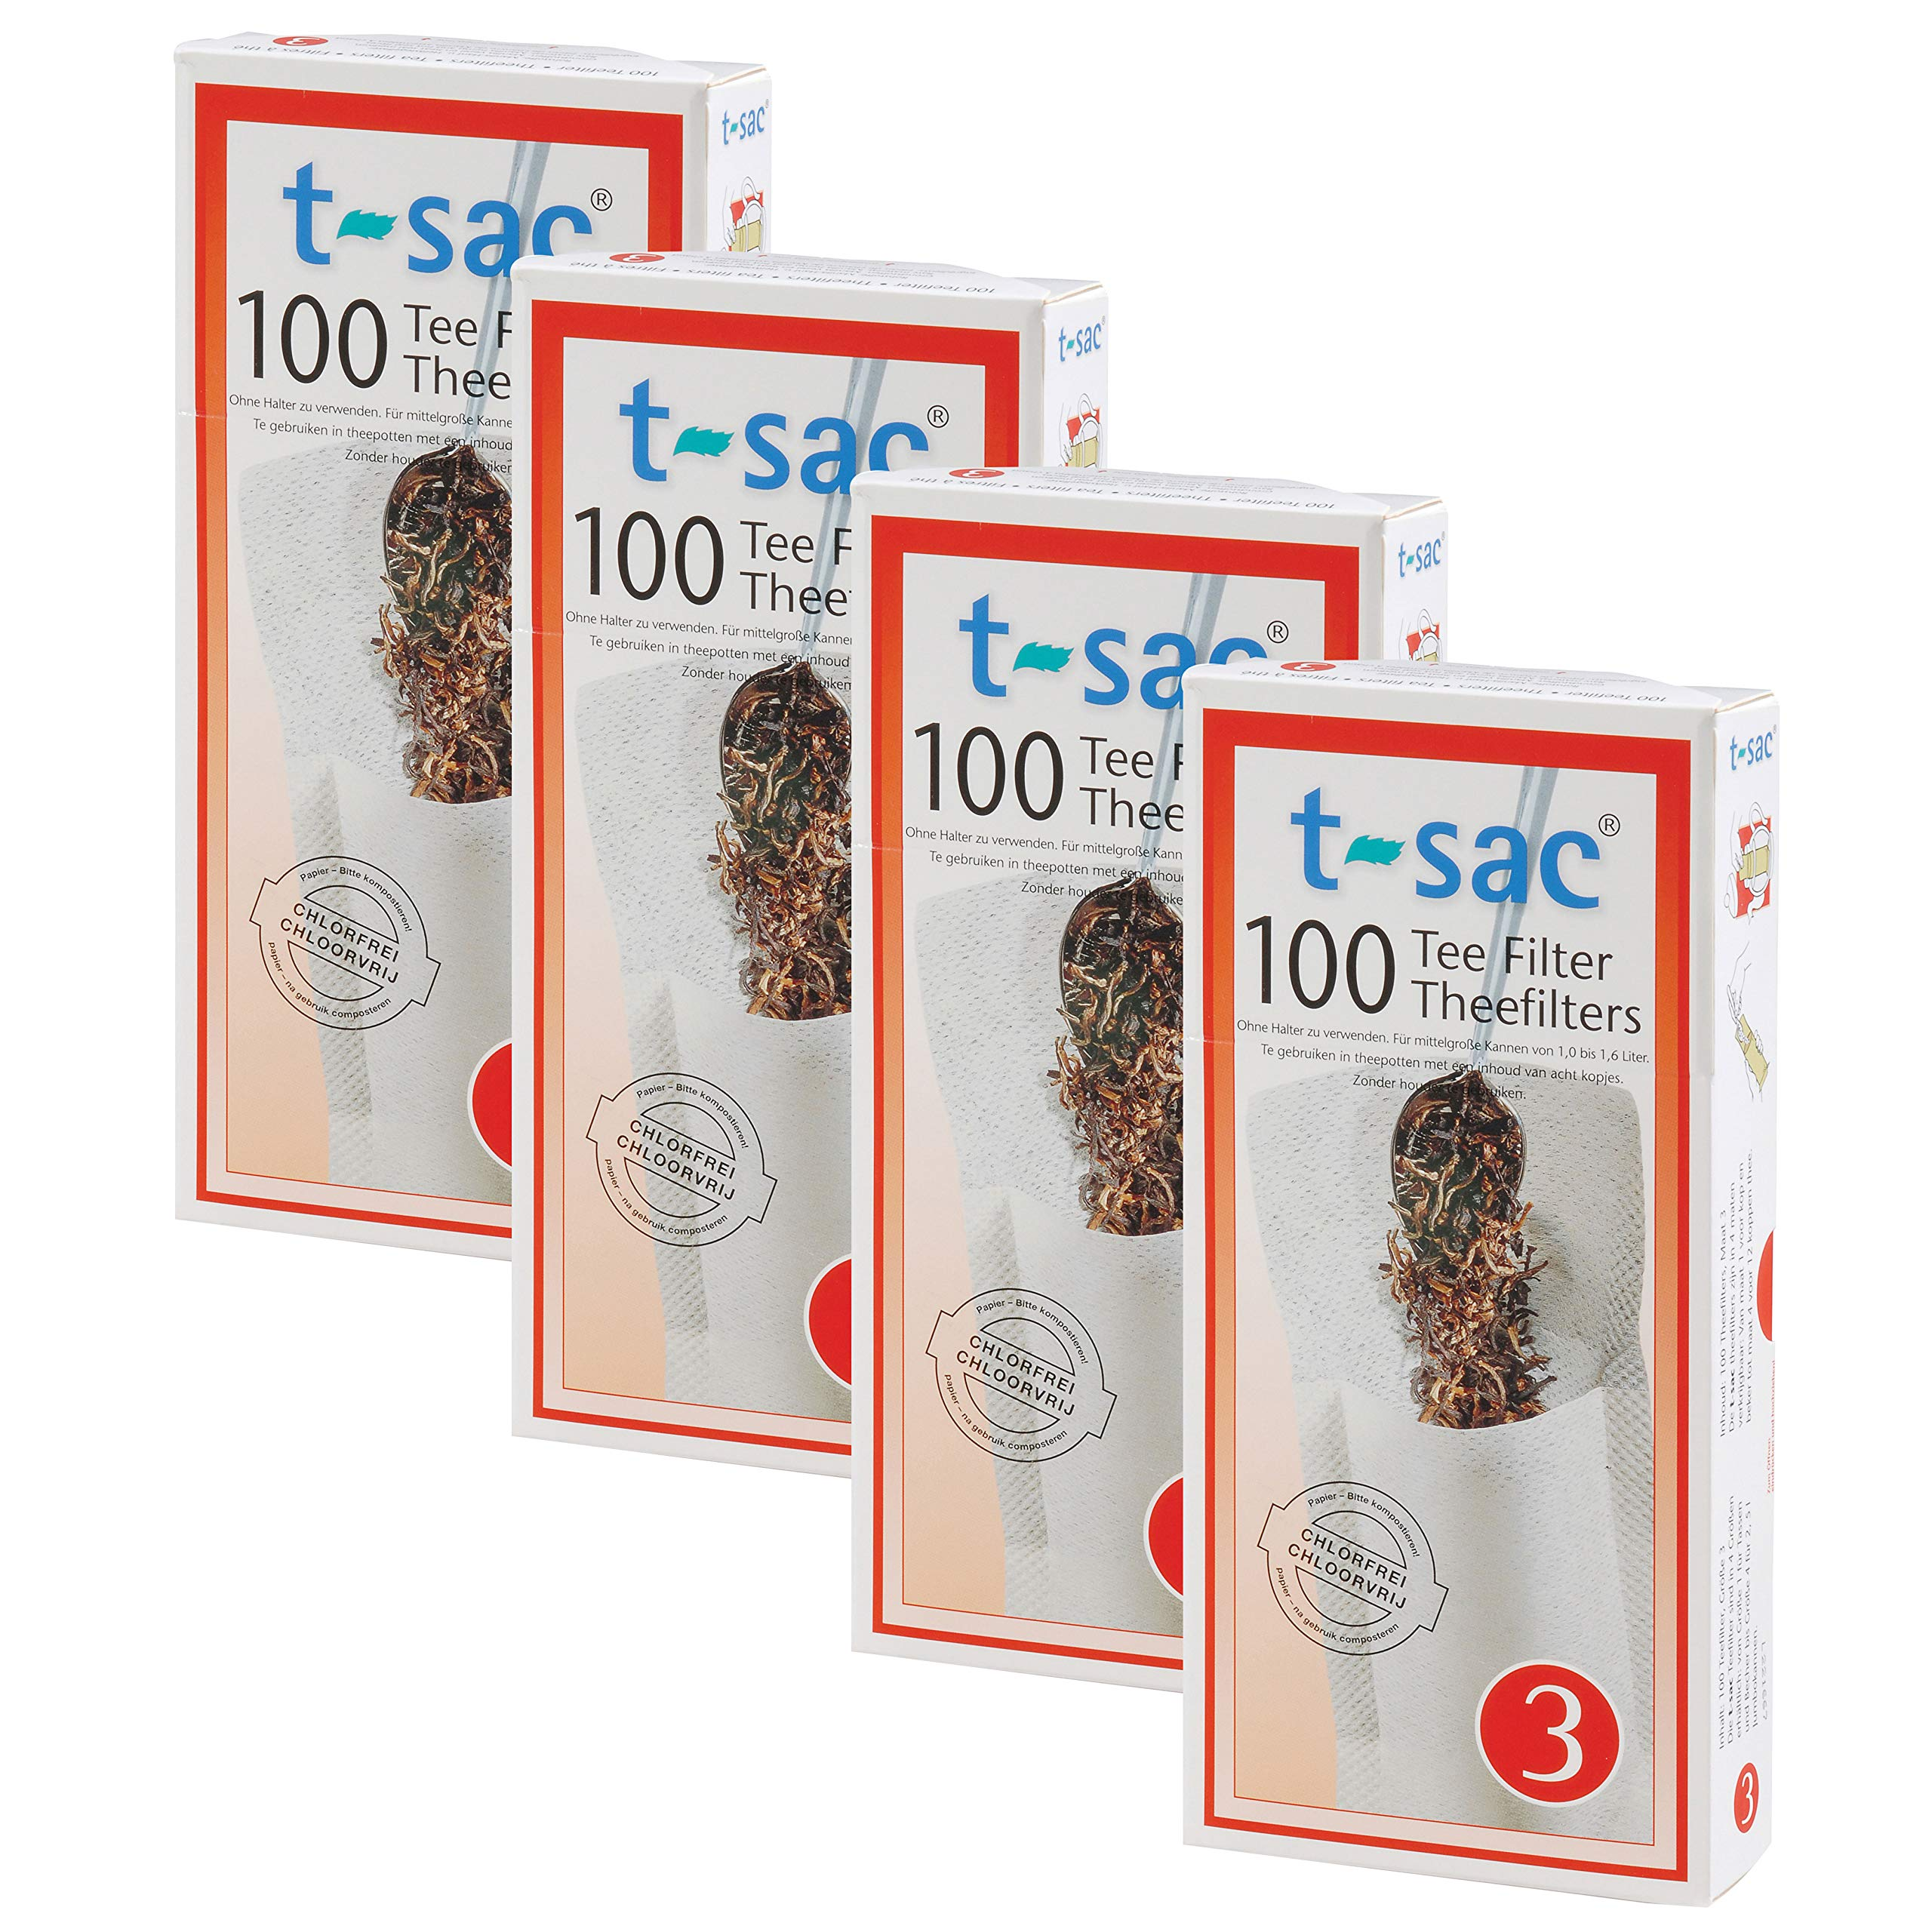 T-Sac Tea Filter Bags, Disposable Tea Infuser, Number 3-Size, 3 to 8-Cup Capacity, Set of 400 by T-Sac